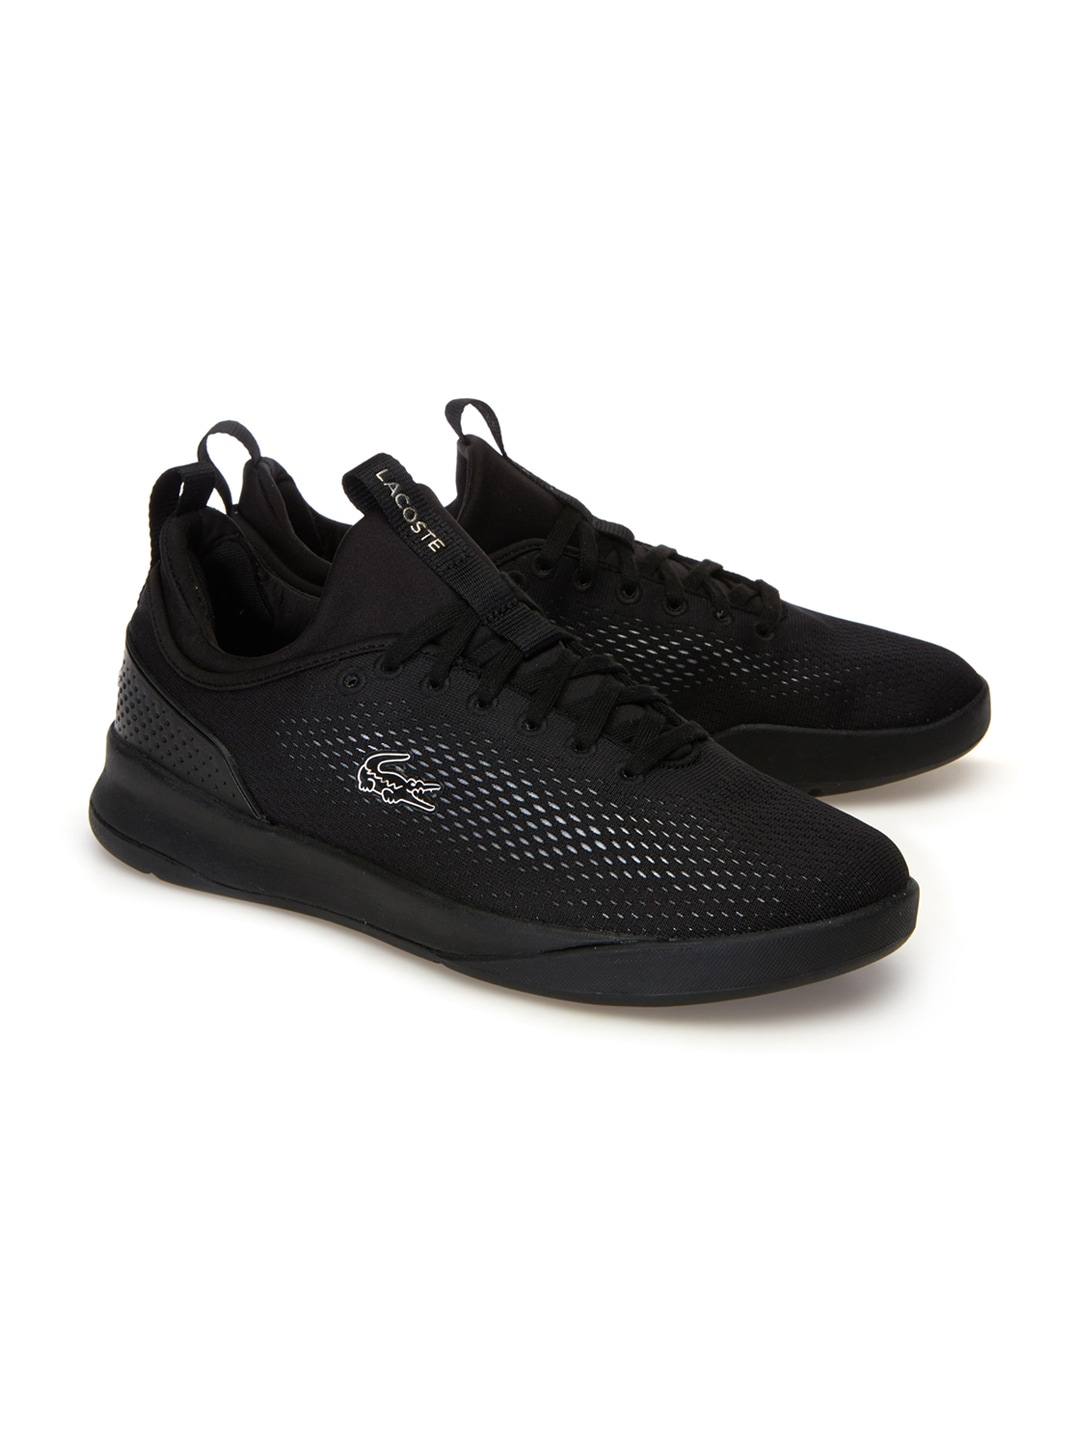 81fda398343aa Buy Lacoste Men Black Training Or Gym Shoes - Sports Shoes for Men ...